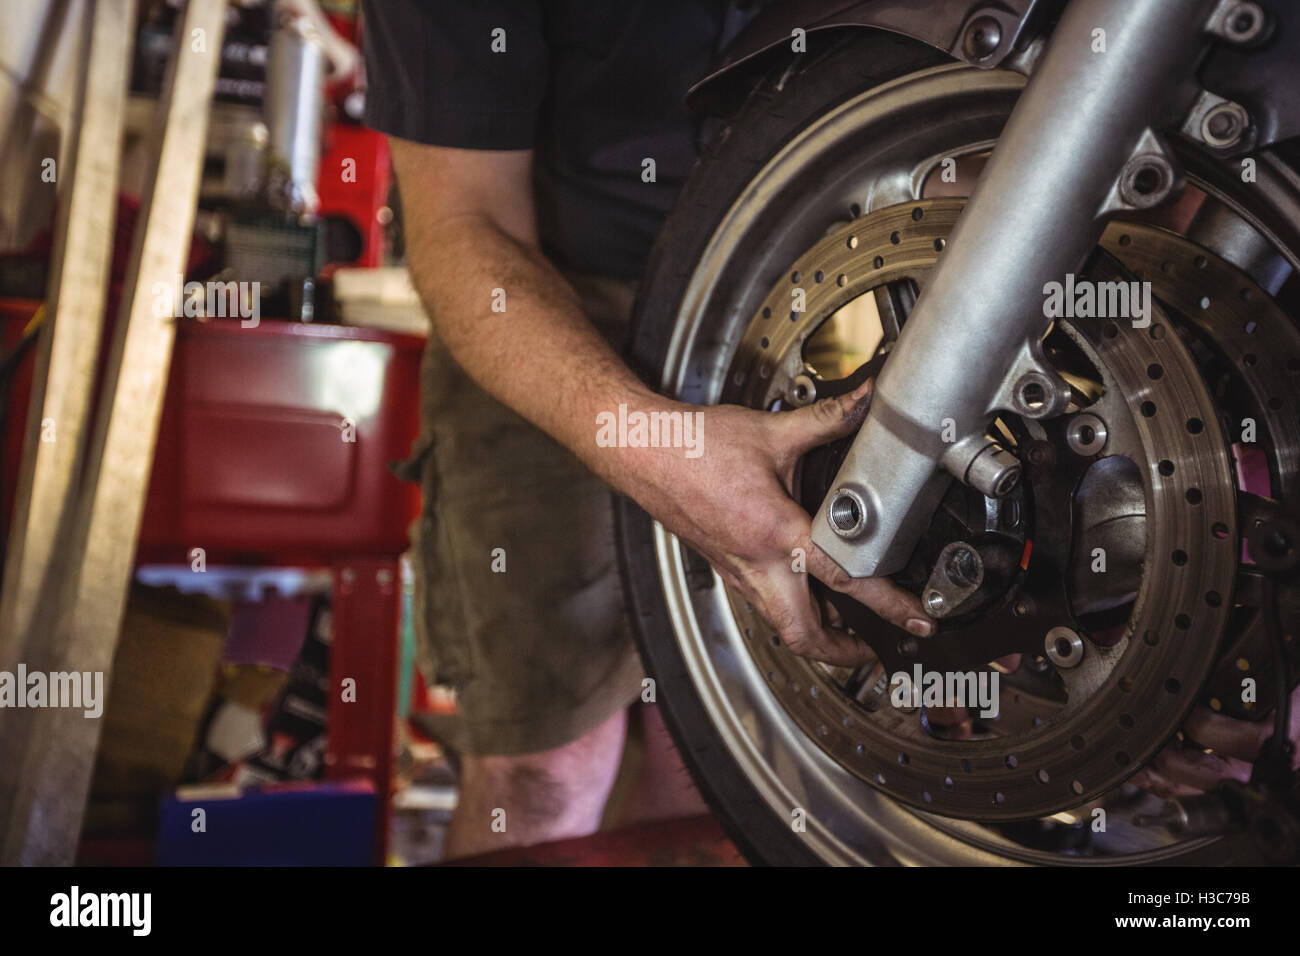 Mechanic examining a motorbike disc brake - Stock Image